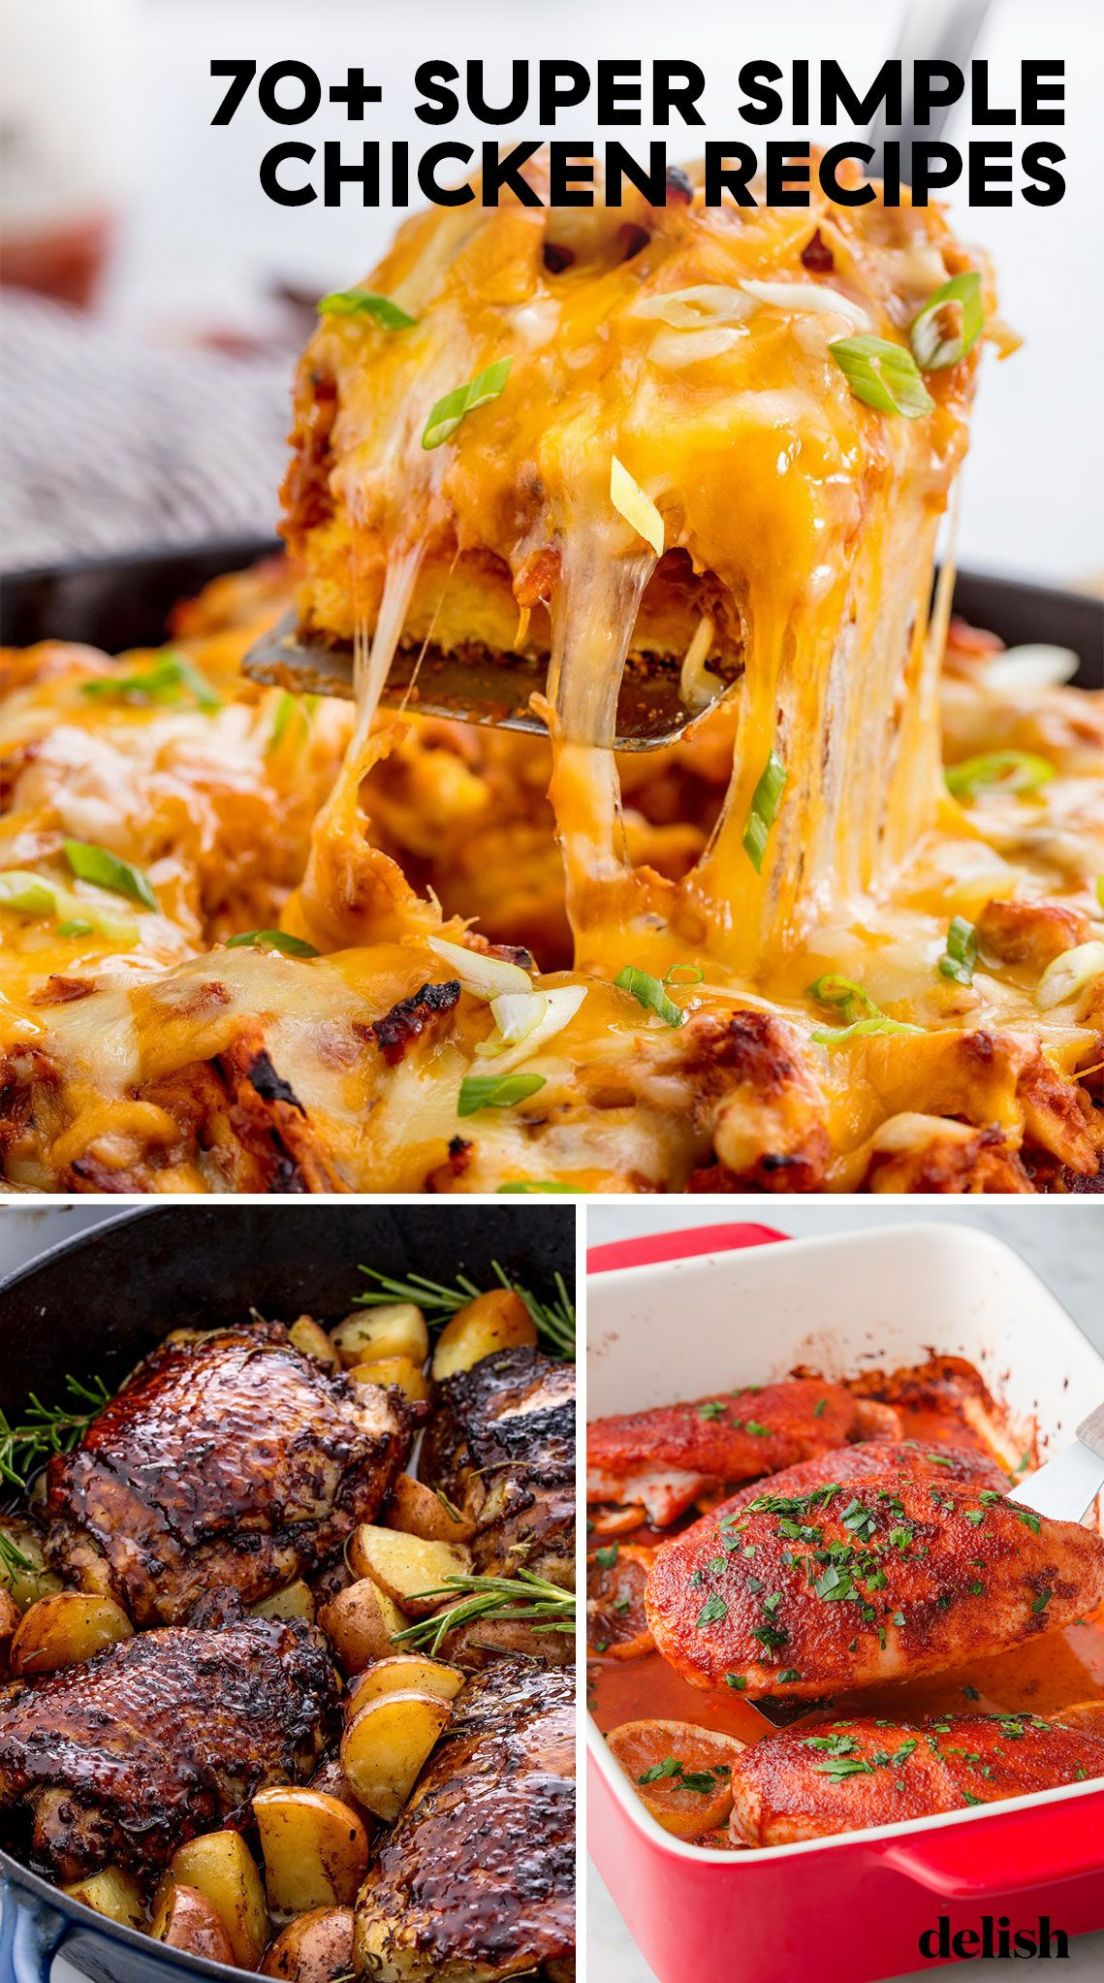 11+ Easy Chicken Dinner Recipes - Simple Ideas for Chicken Dishes - Easy Recipes Chicken